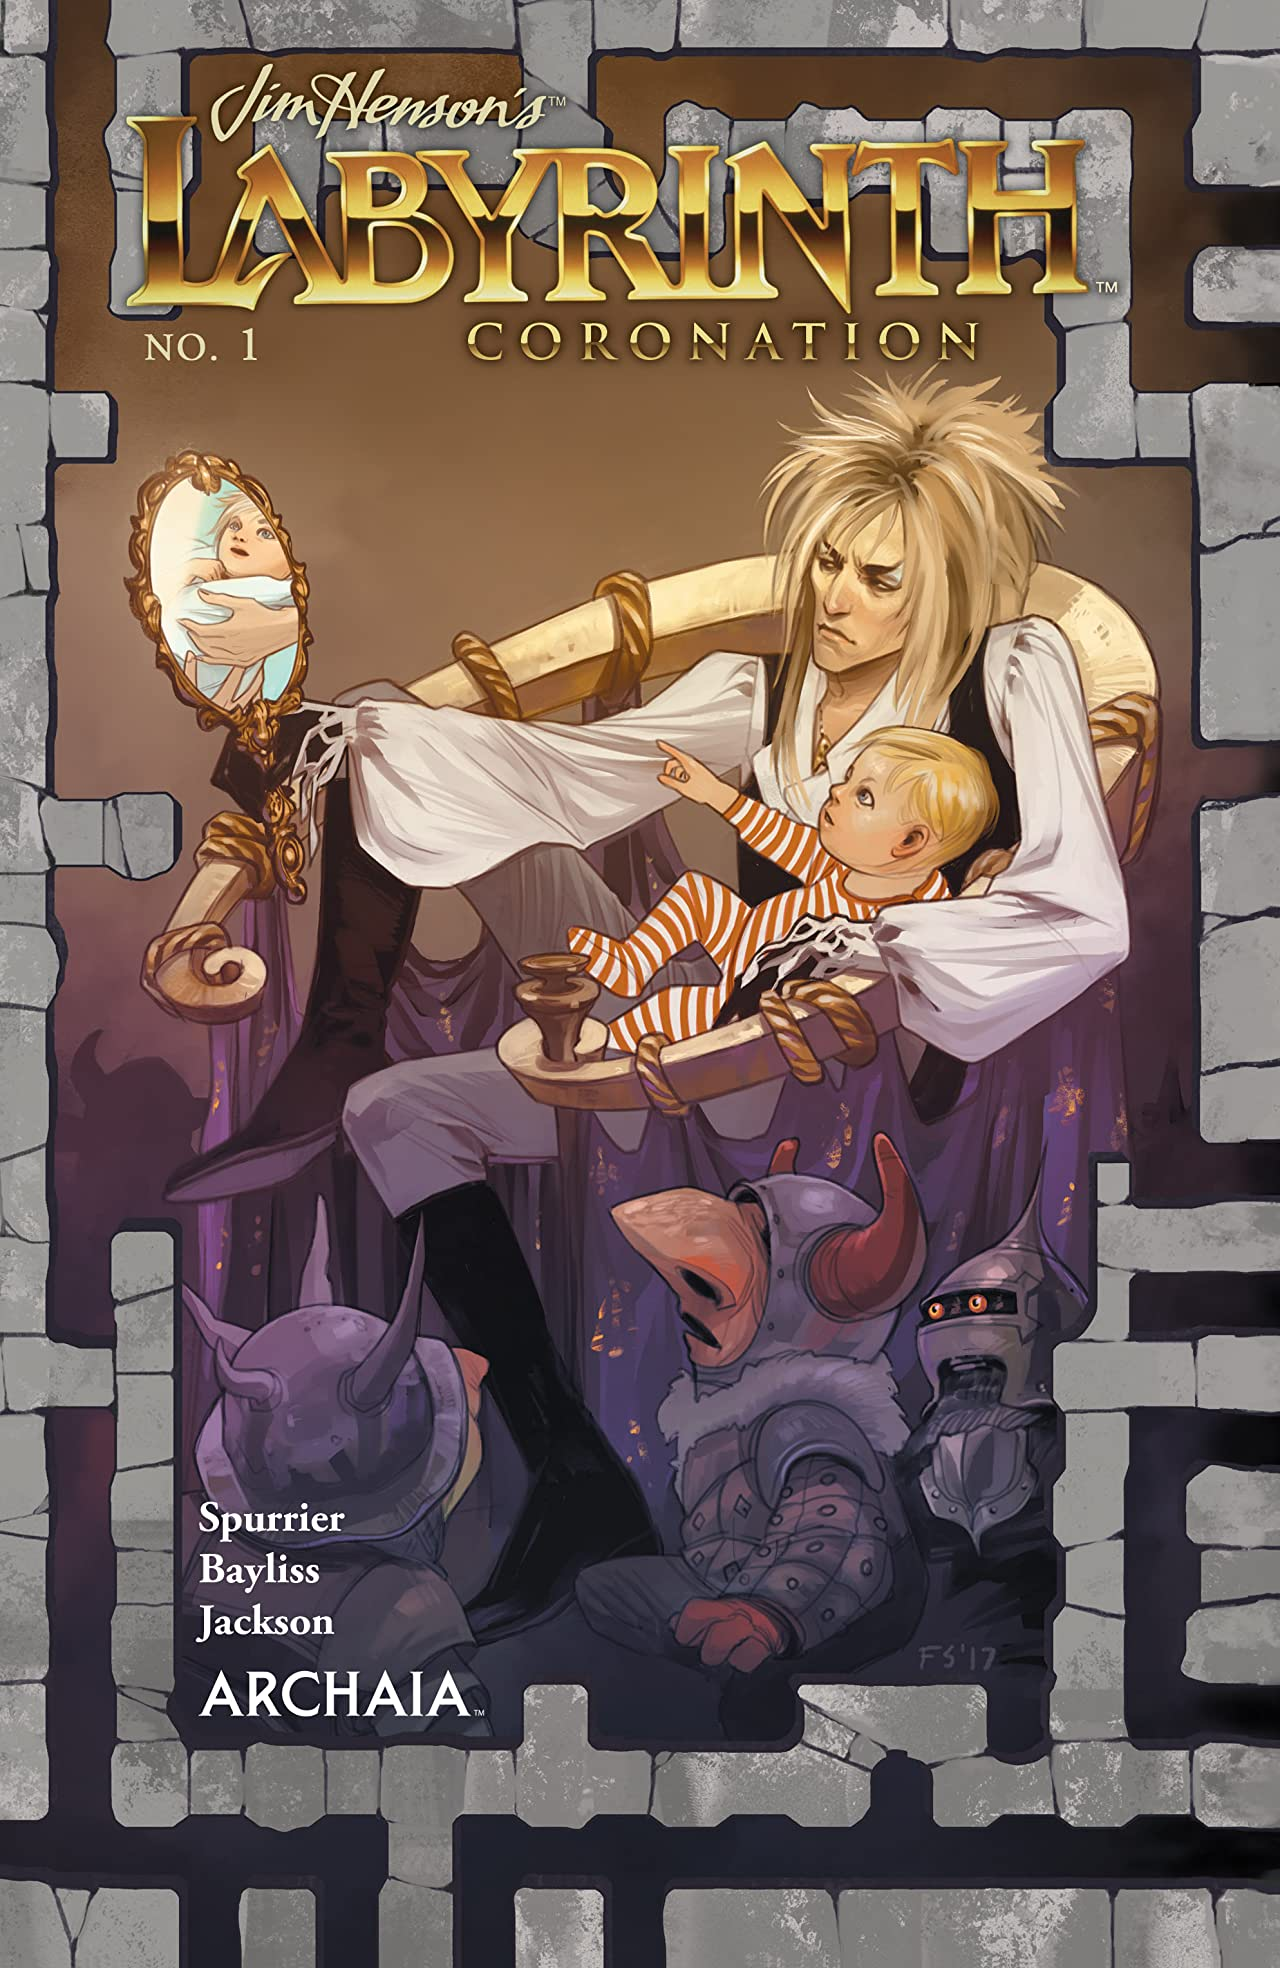 Jim Henson's Labyrinth: Coronation No.1